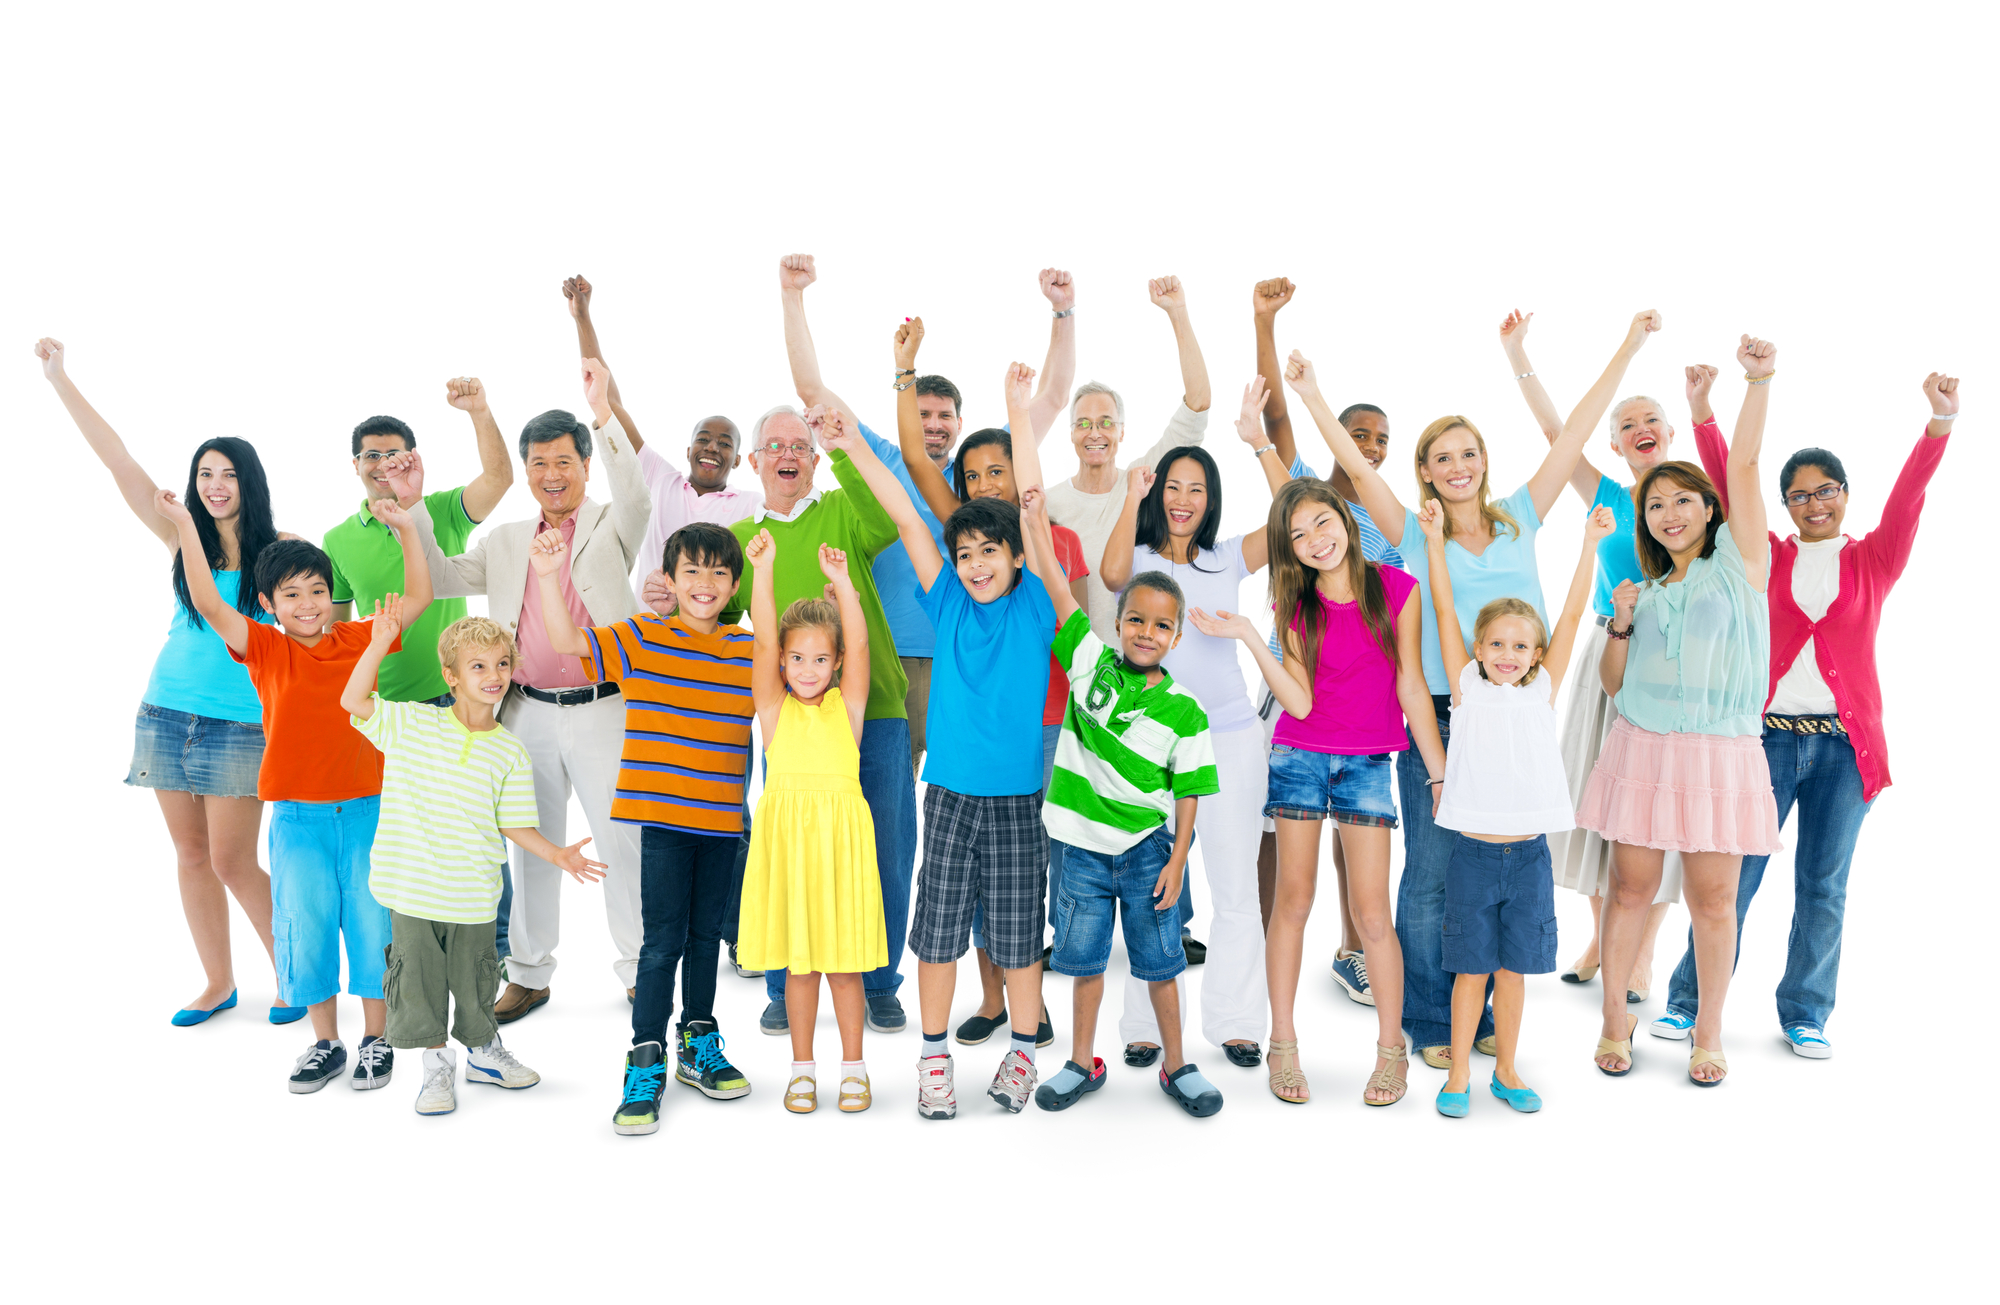 group of people with their arms raised